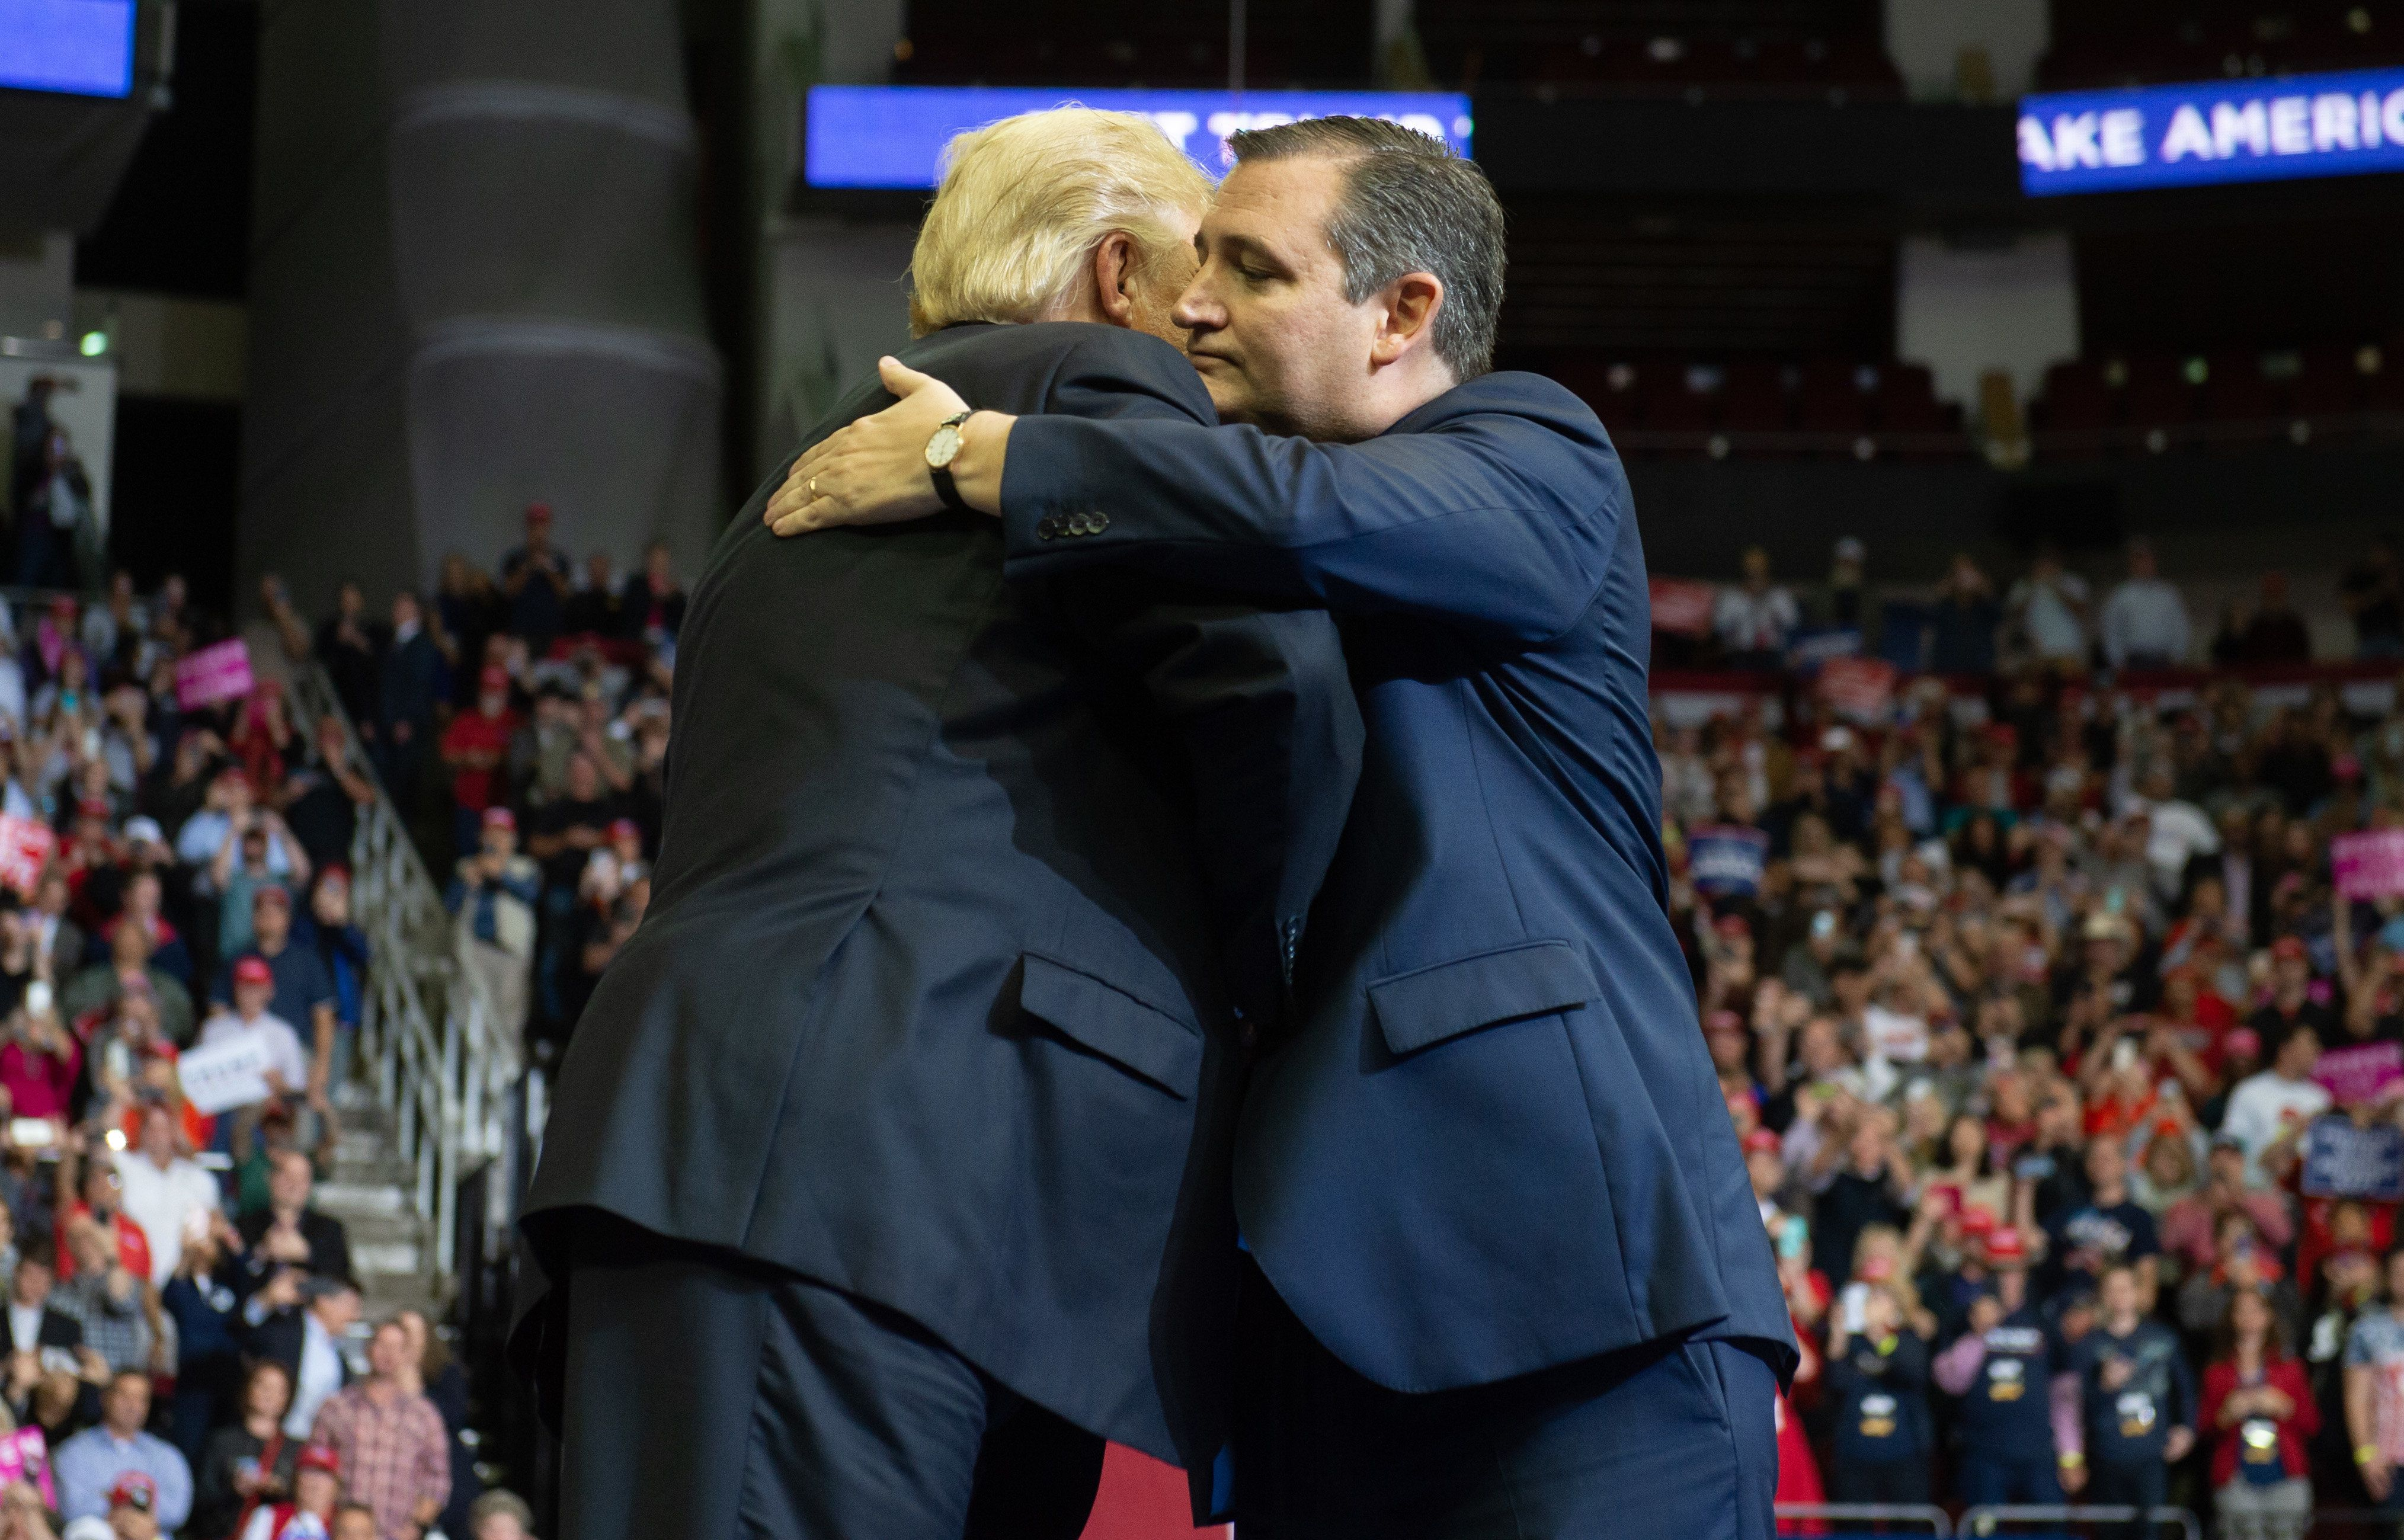 US President Donald Trump greets US Senator Ted Cruz (R), Republican of Texas, during a campaign rally at the Toyota Center in Houston, Texas, on October 22, 2018. (Photo by SAUL LOEB / AFP)        (Photo credit should read SAUL LOEB/AFP/Getty Images)